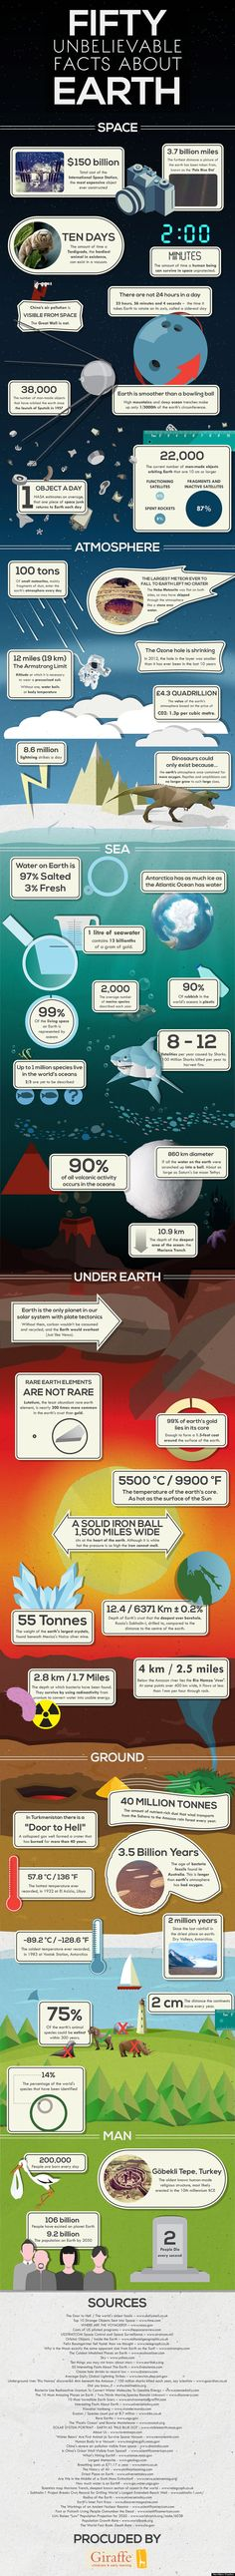 Fifty amazing facts about Earth via @Dee Armstrong Hobbs Academy of Sciences #infographic #theworldything #theything